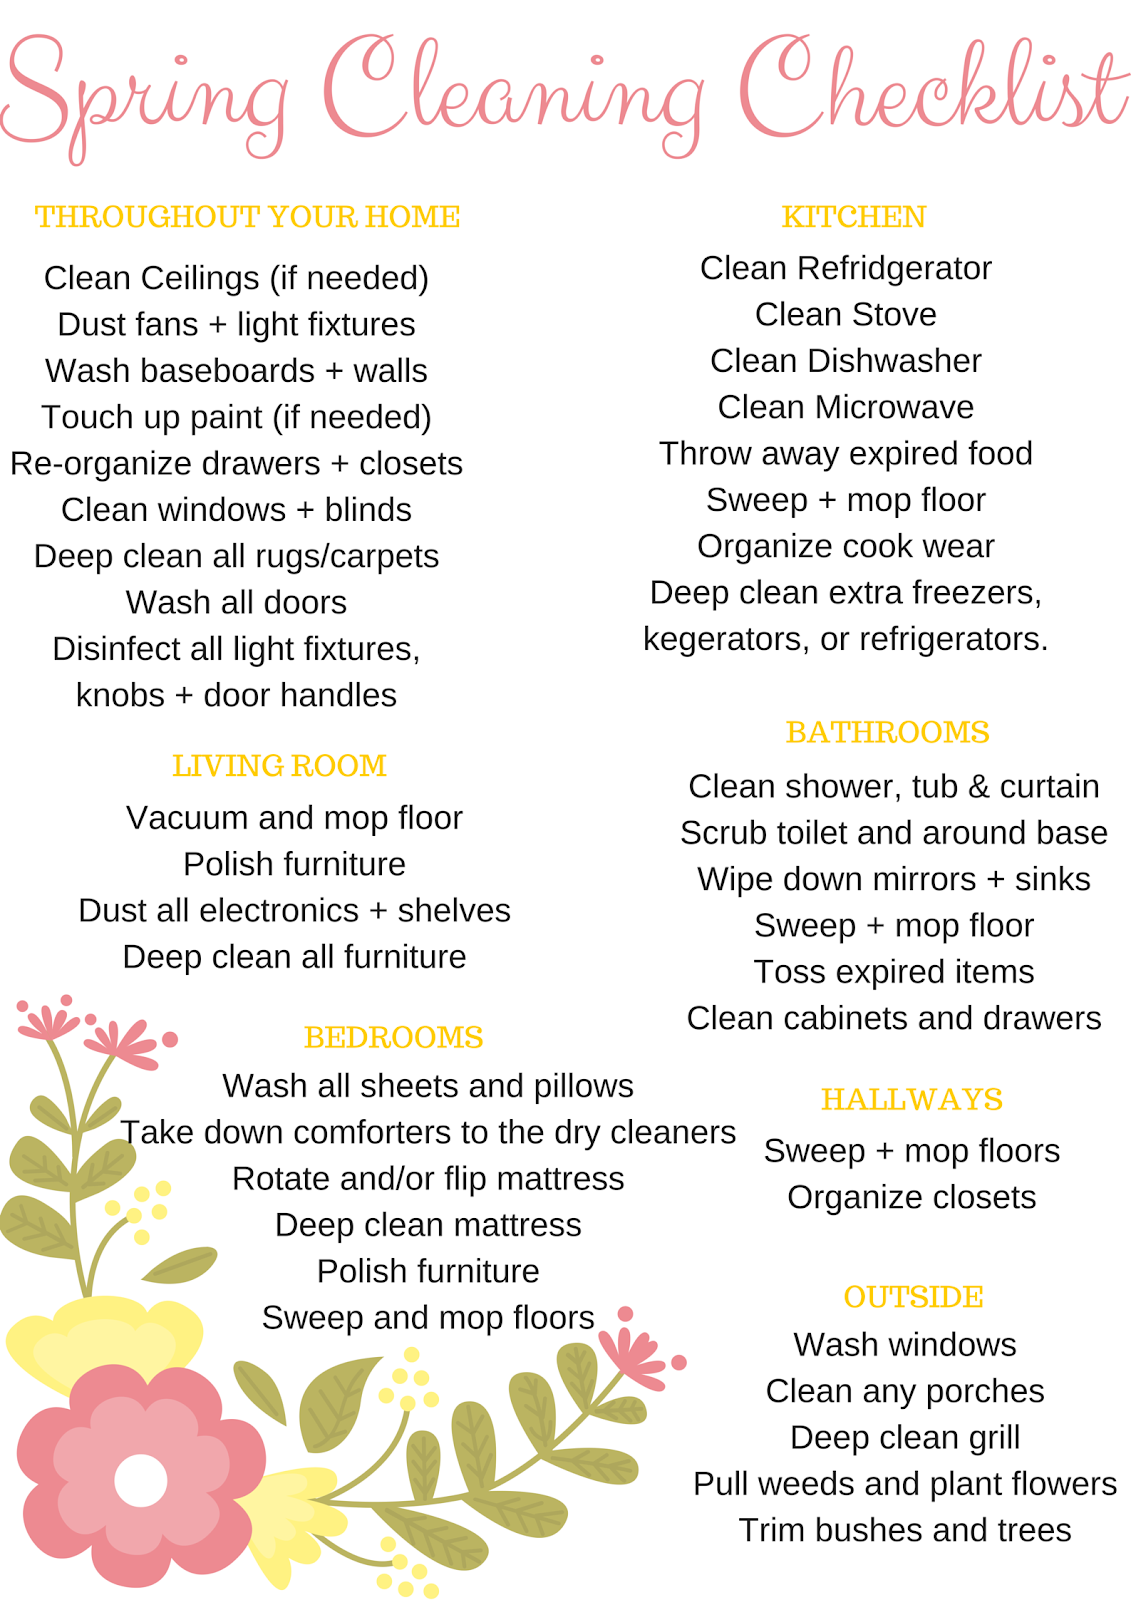 Spring Cleaning Checklist-2.png